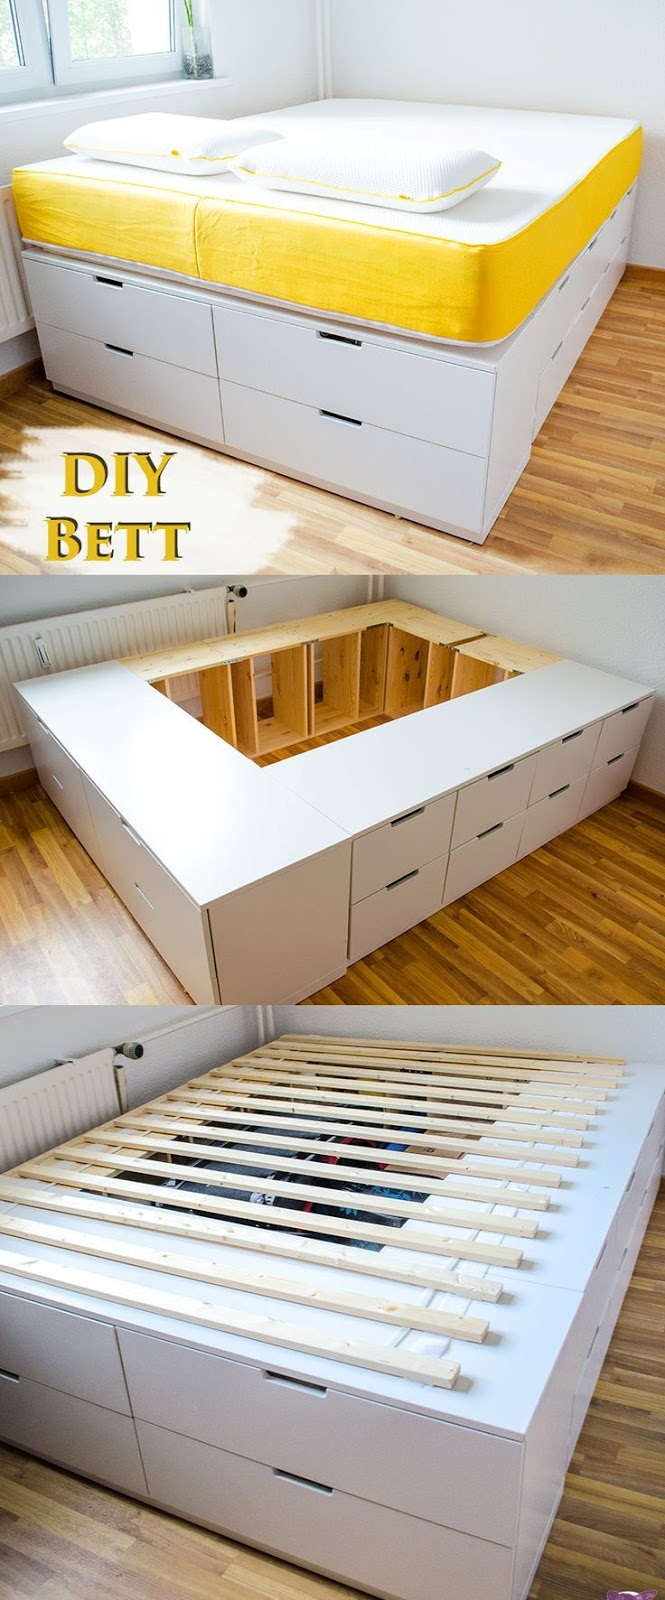 Do It Yourself Bett 30 Top Diy Inspirations Innovative Crafts Home Decoration To